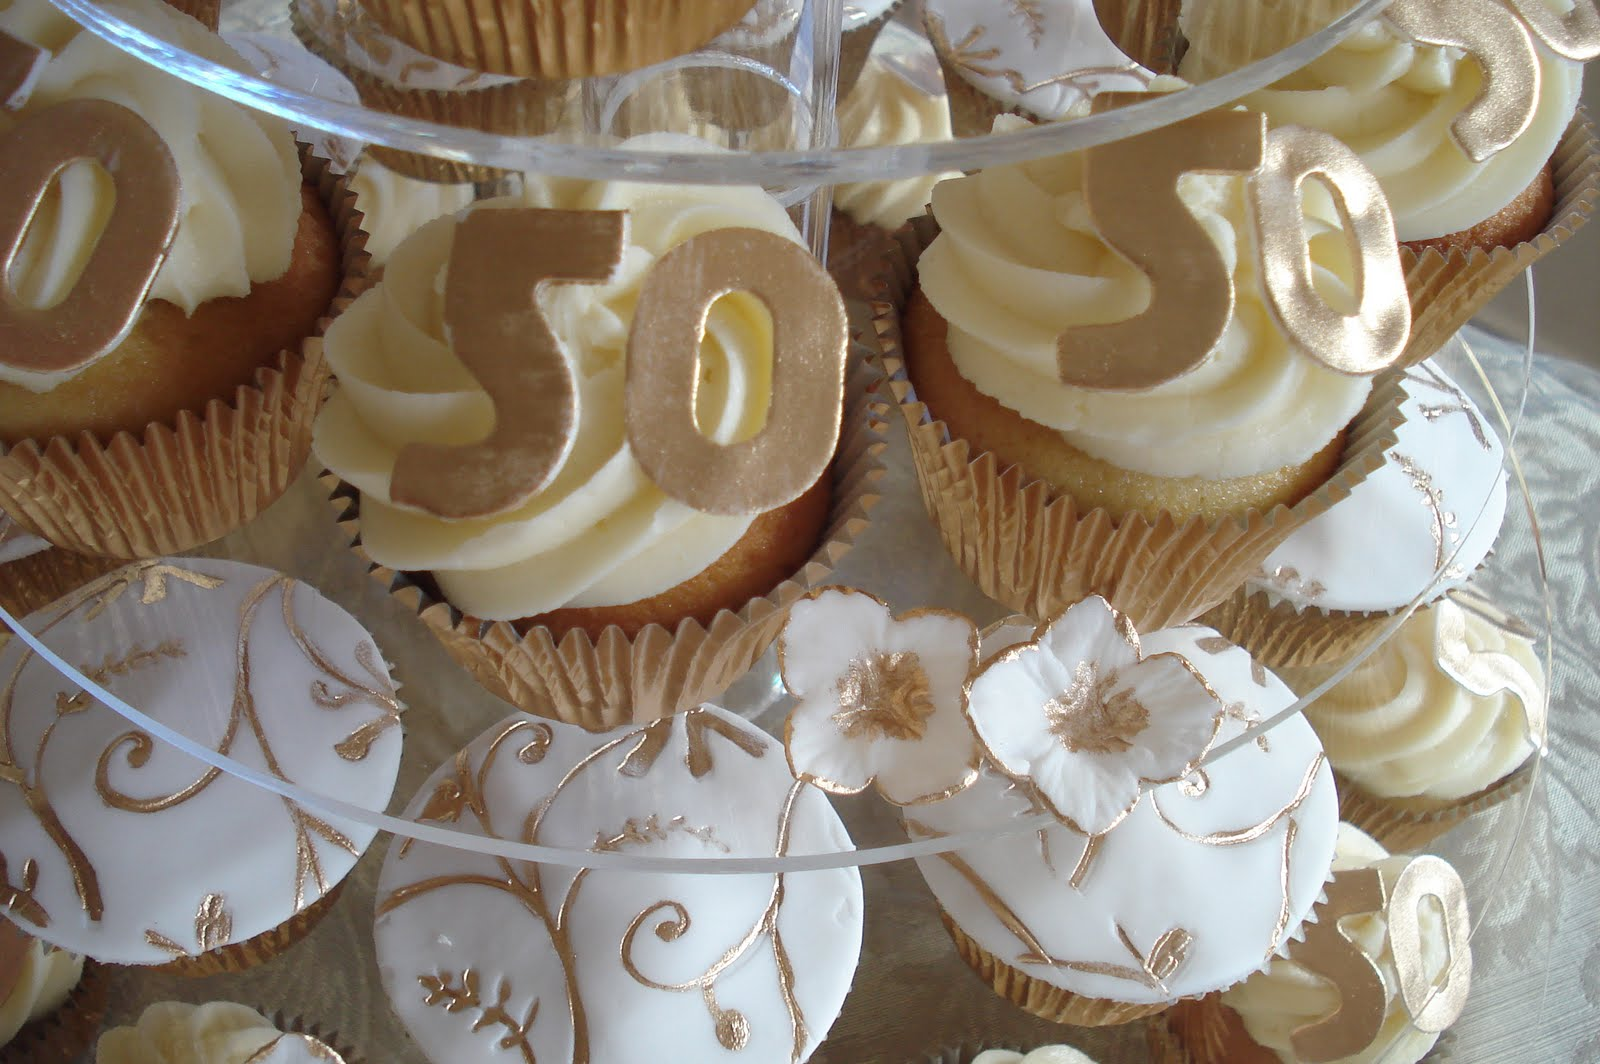 Wonderful World of Cupcakes: Cupcakes for a 50th Wedding Anniversary